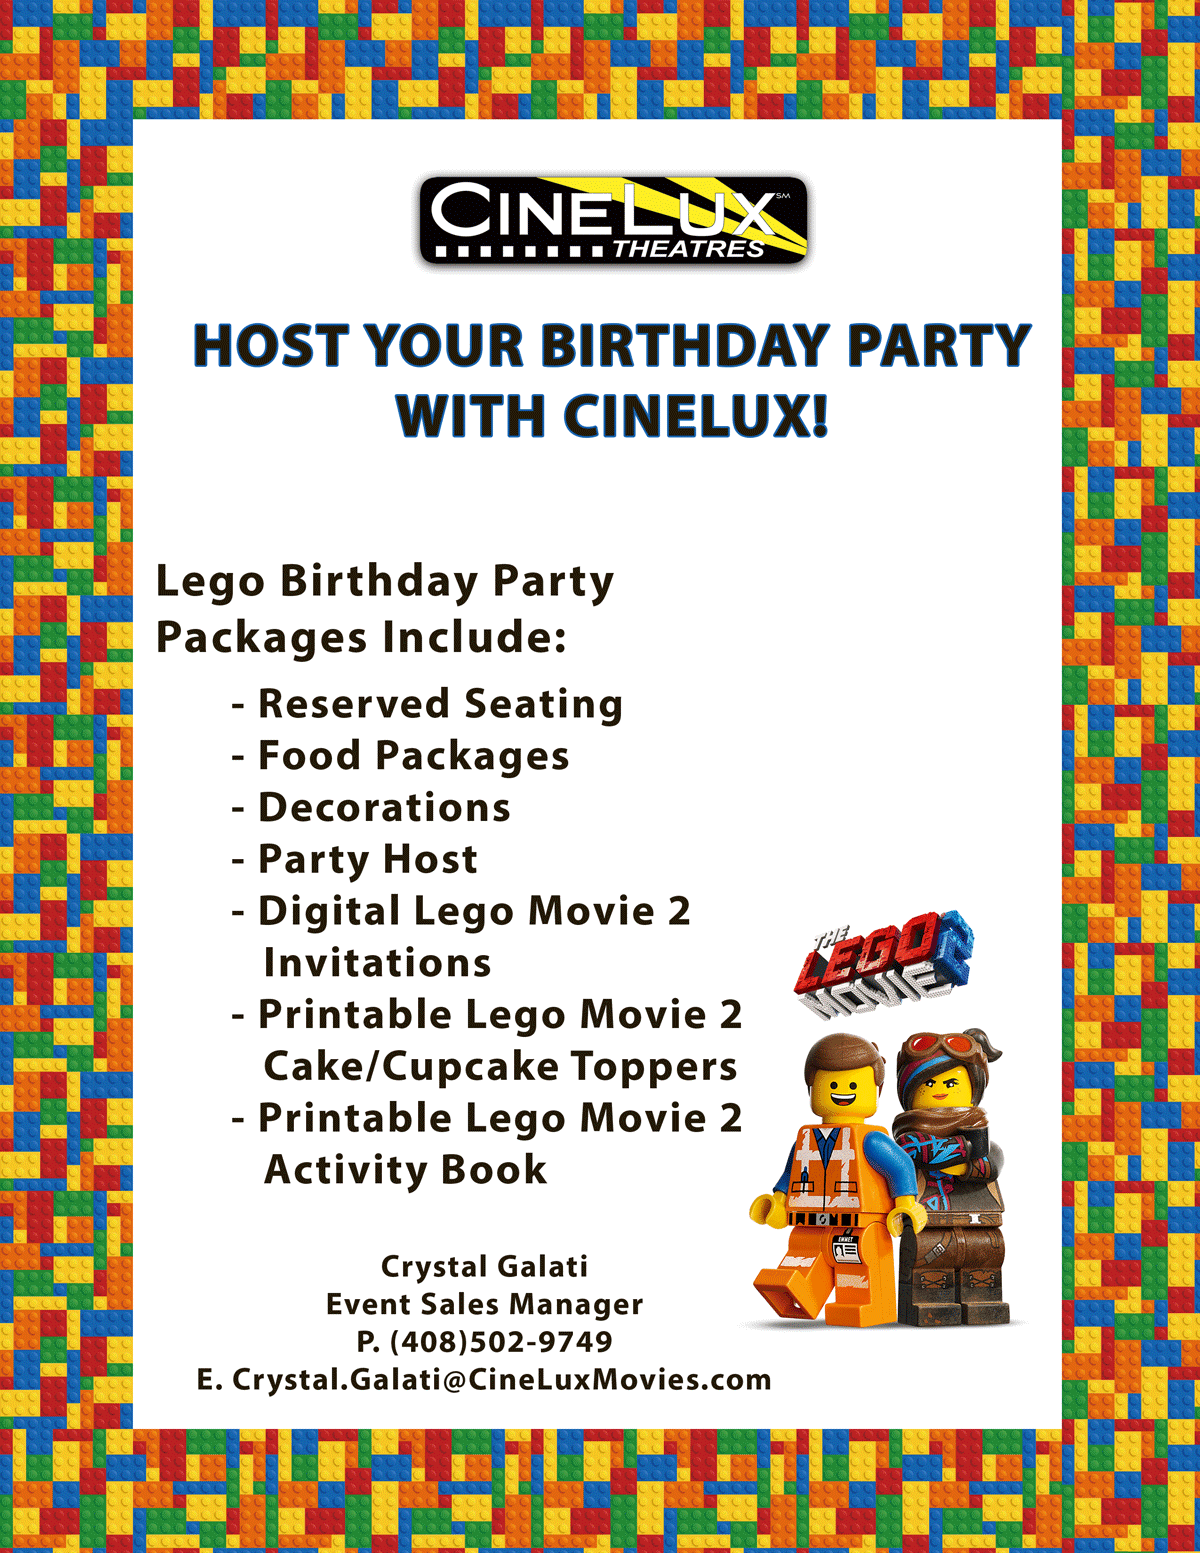 Host your party at cinelux!